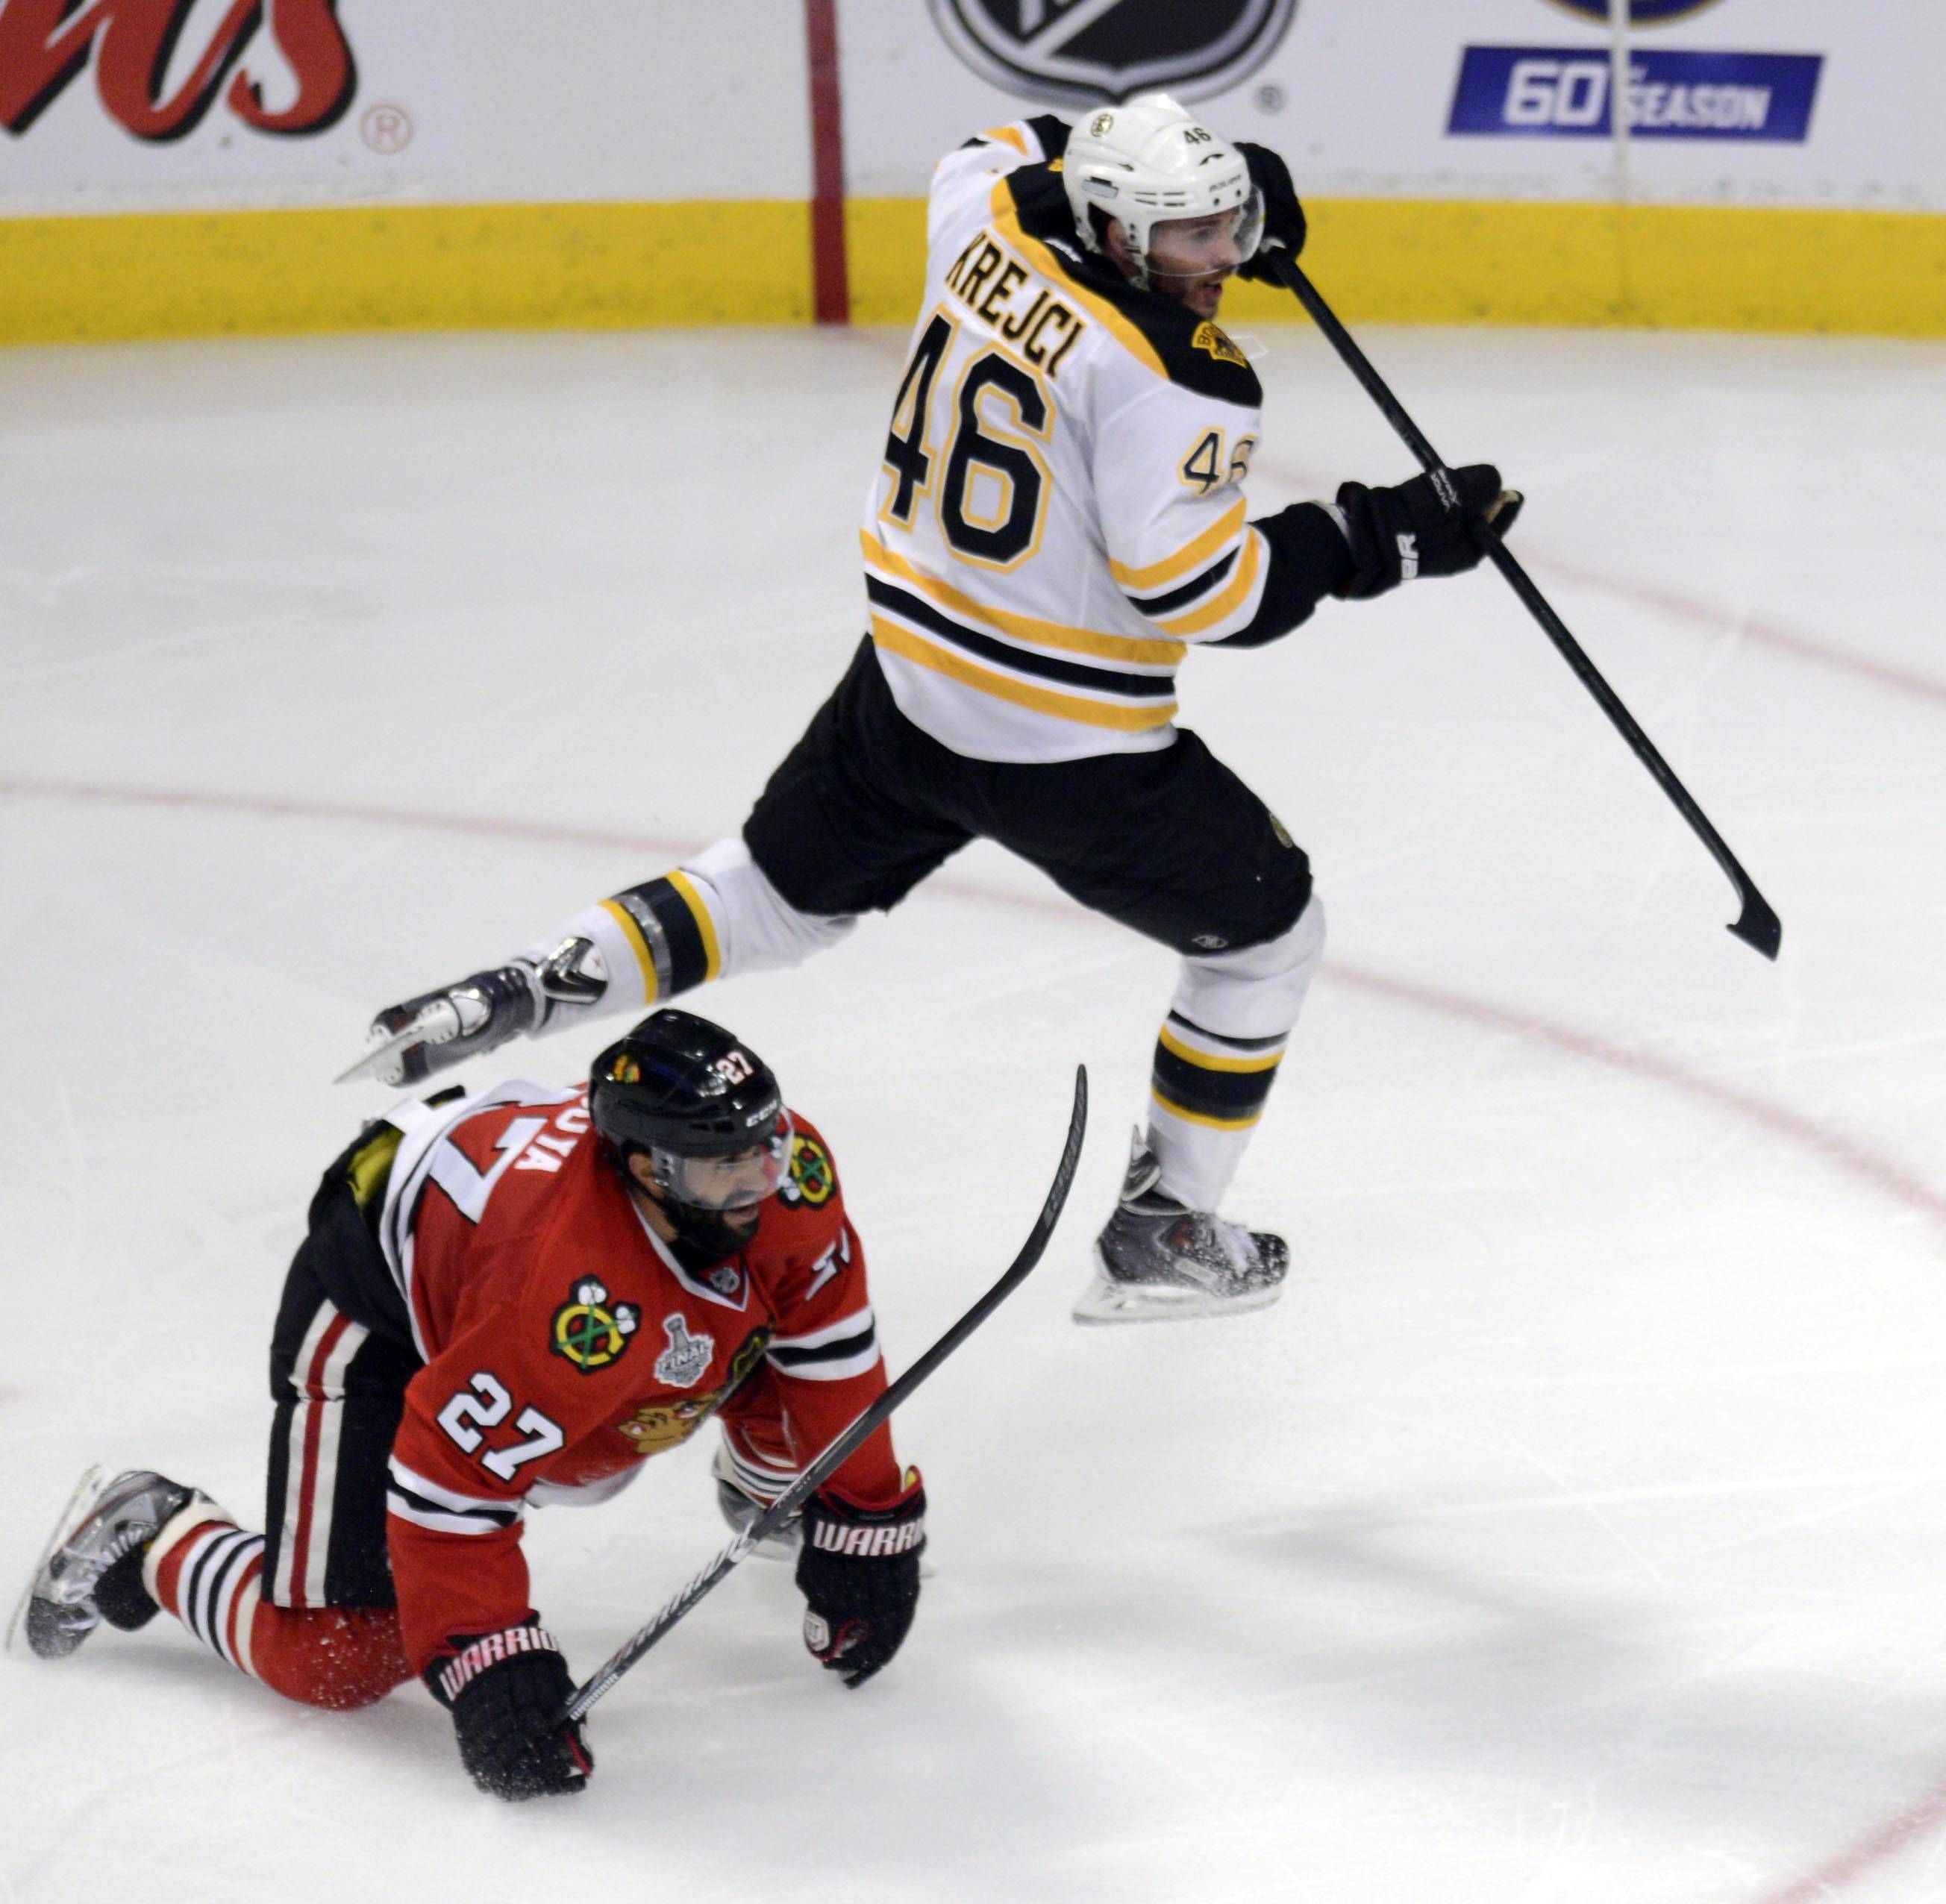 Boston Bruins center David Krejci jumps over Chicago Blackhawks defenseman Johnny Oduya in the third period during Game 1 of the Stanley Cup Finals Wednesday at the Untied Center in Chicago.